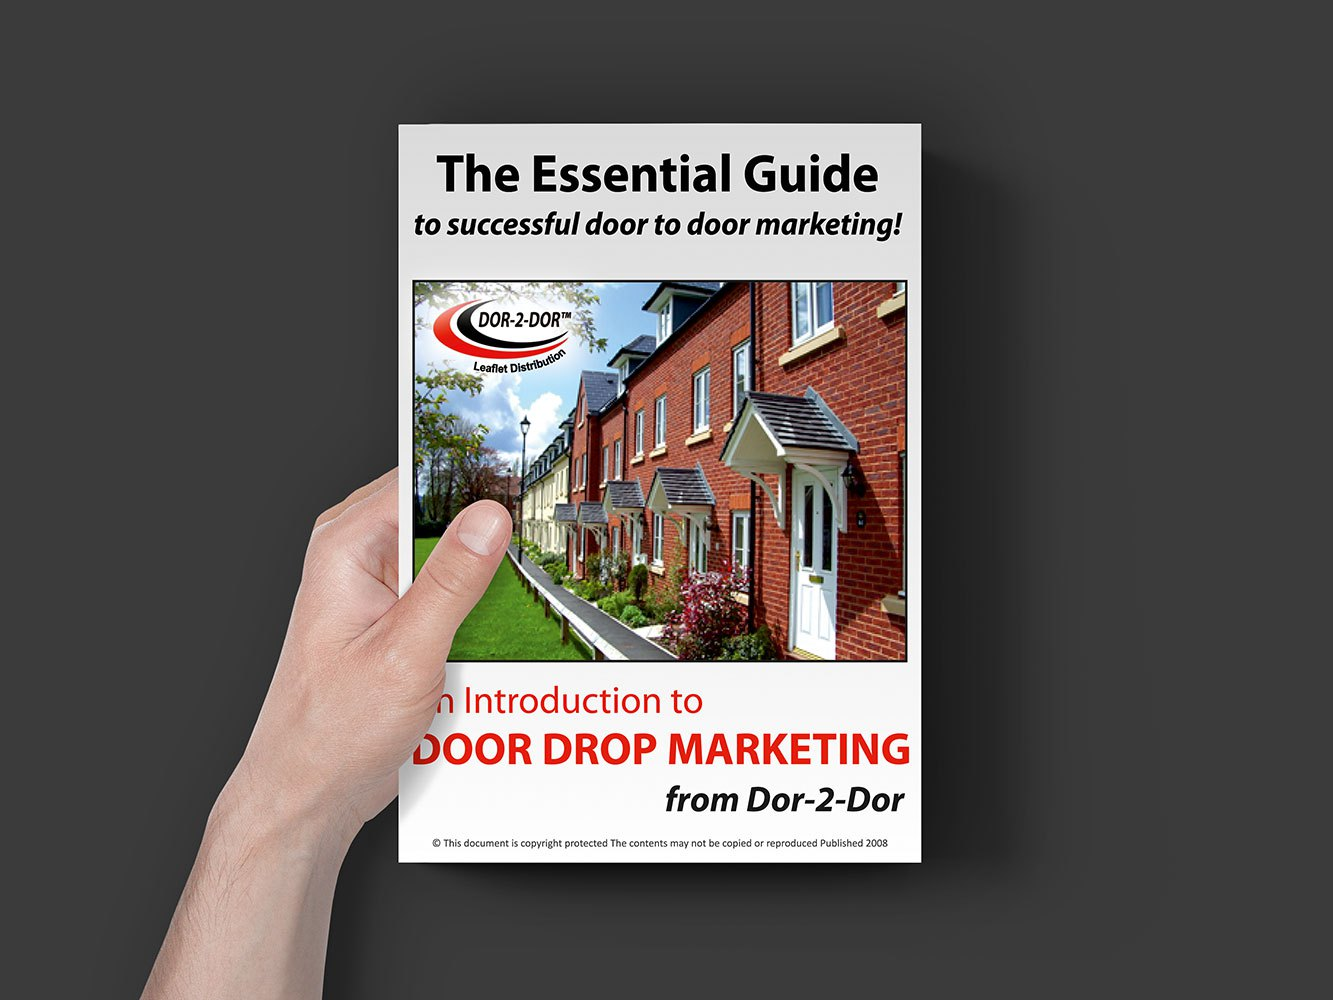 leaflet distribution free guide